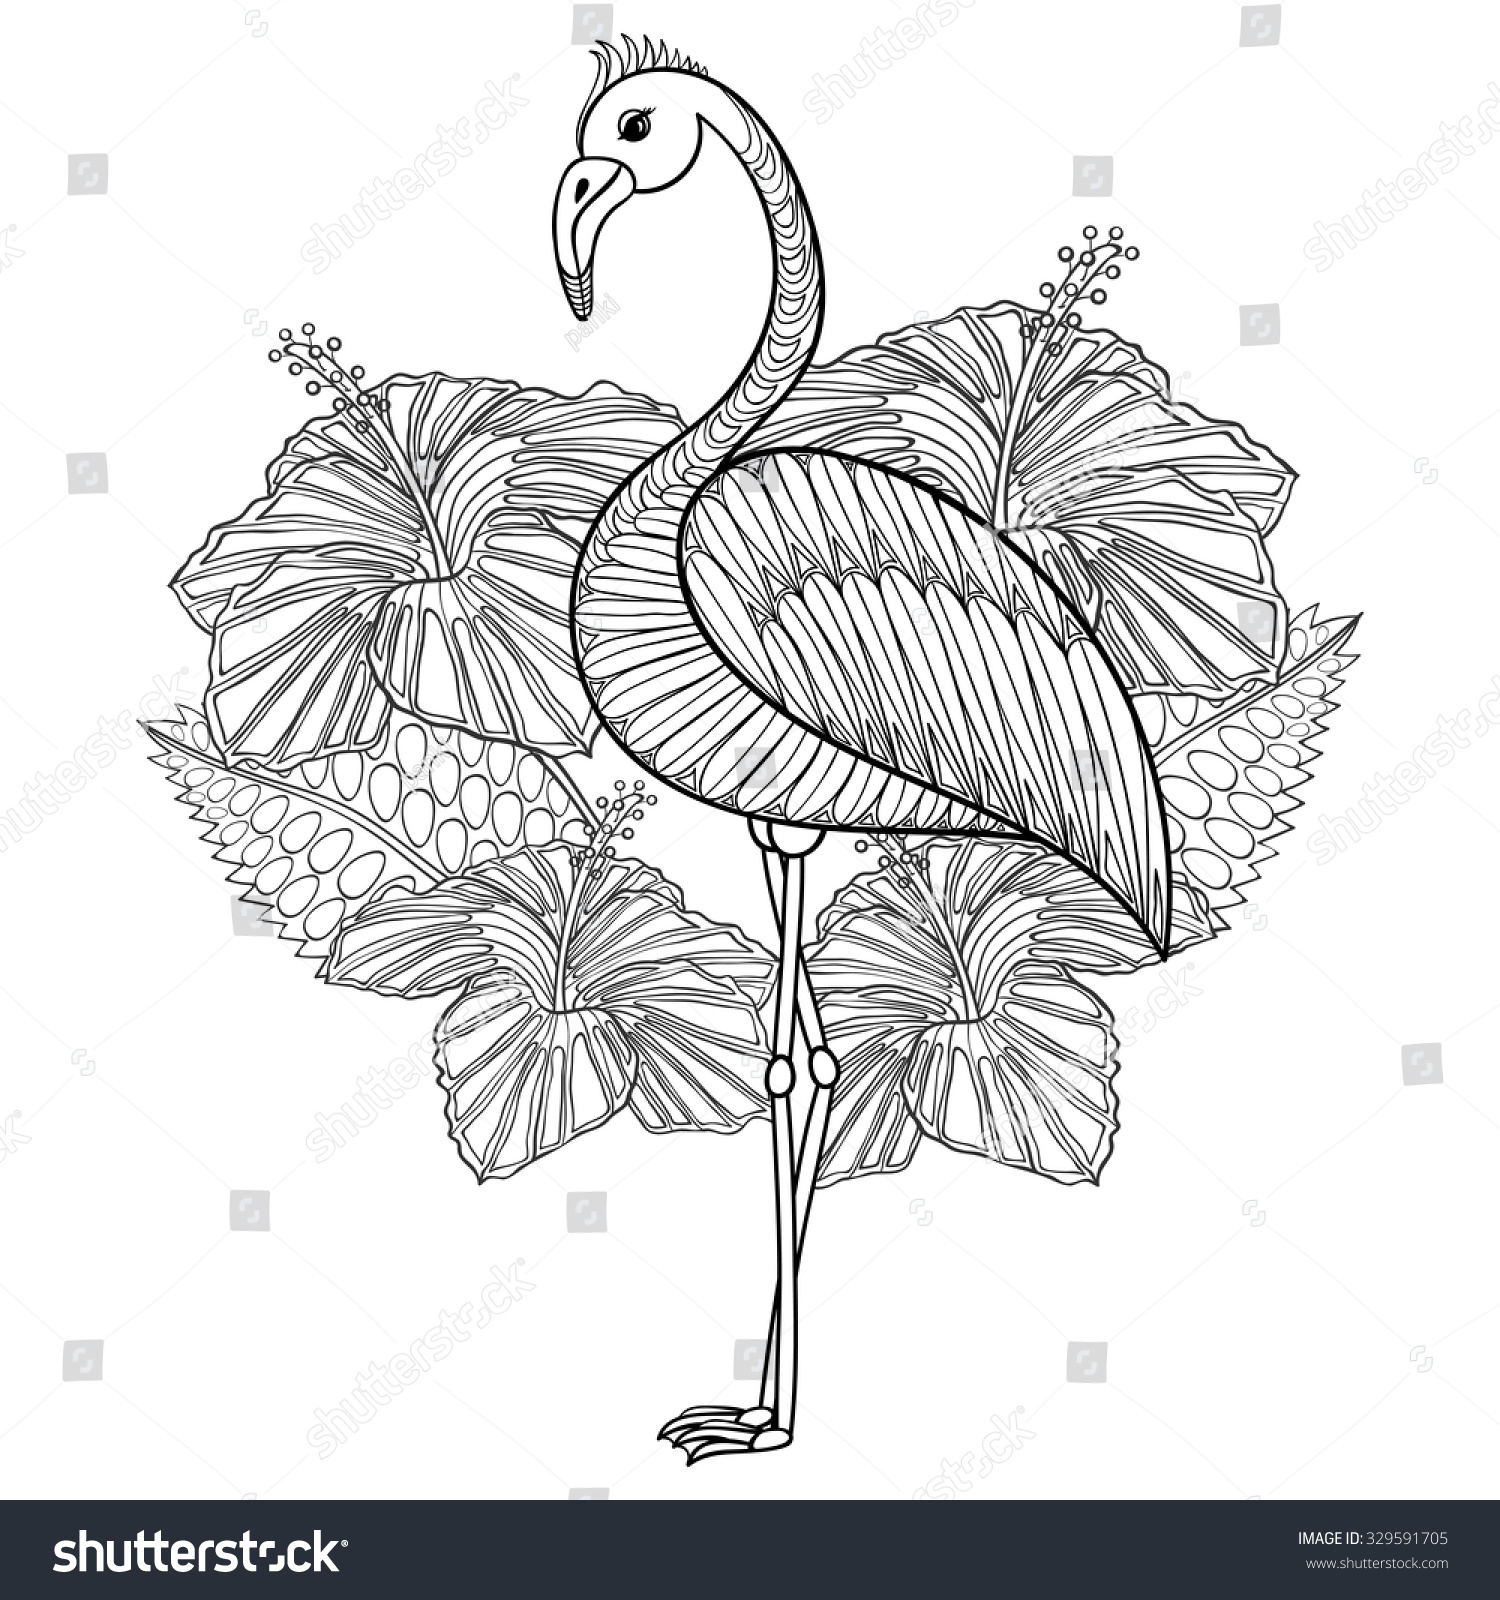 Flamingo in hibiskus coloring page zentangle illustartion for adult coloring books or tattoos with high